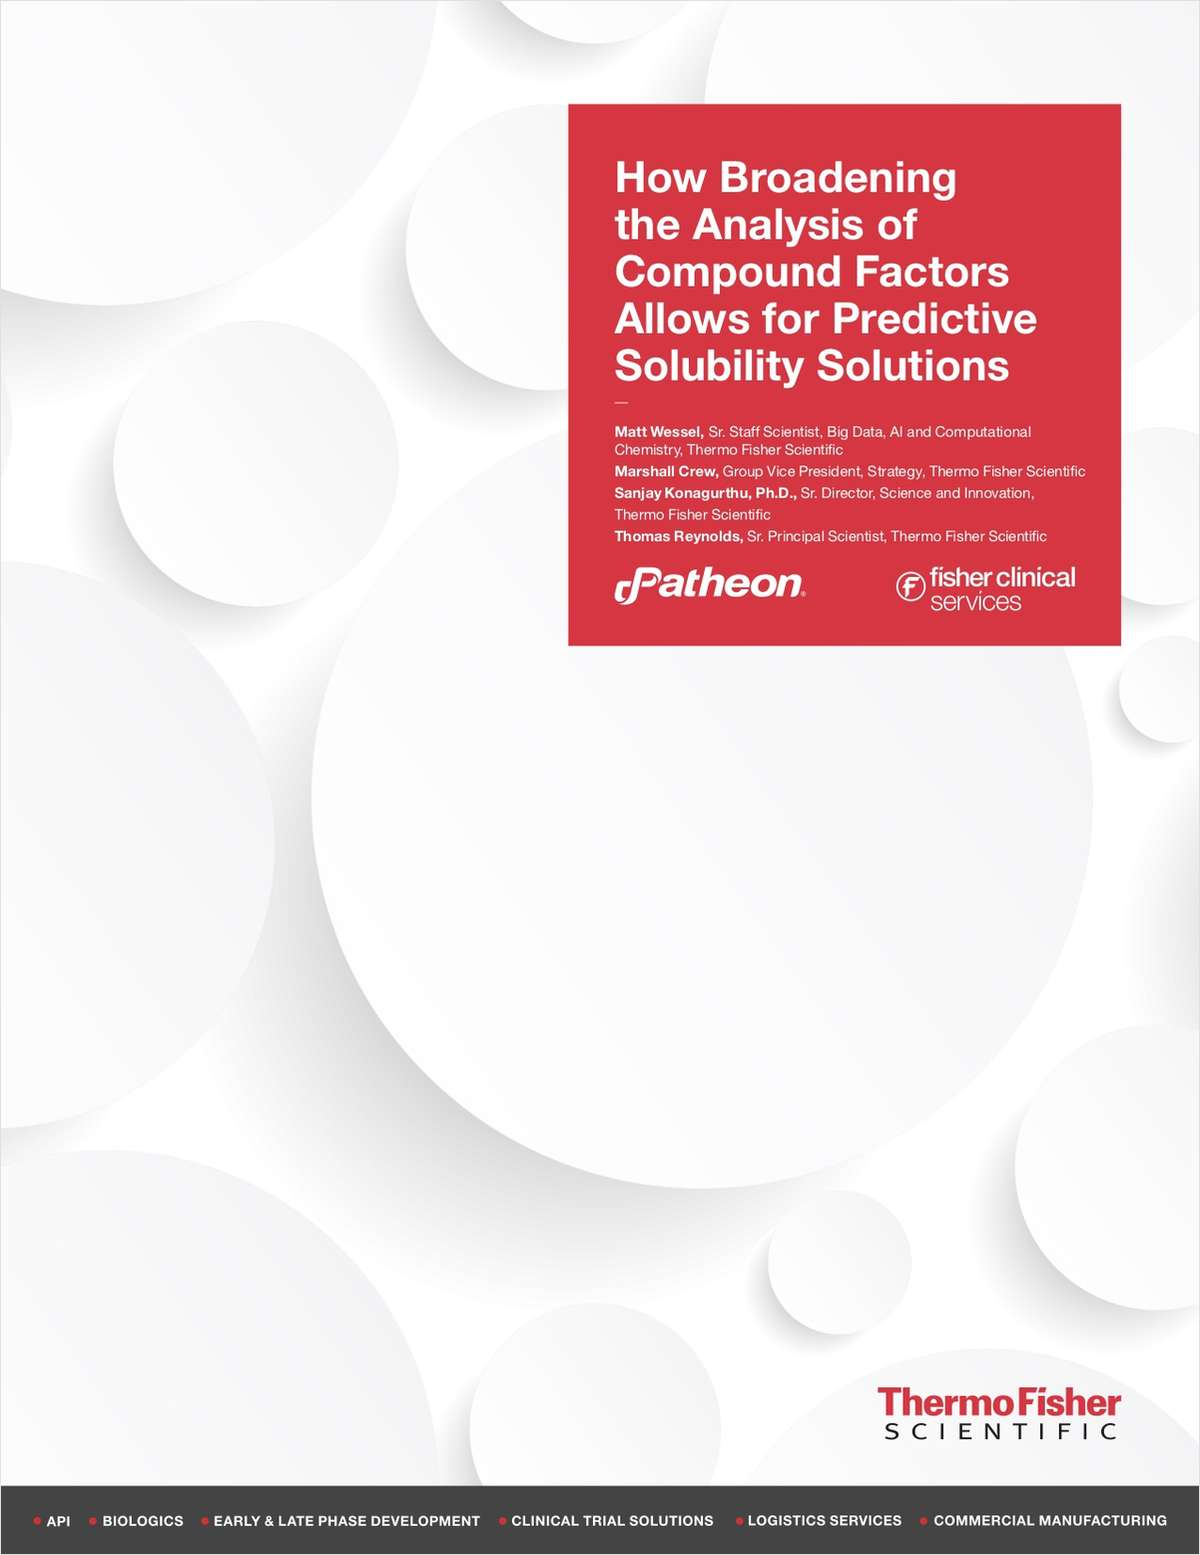 How Broadening the Analysis of Compound Factors Allows for Predictive Solubility Solutions